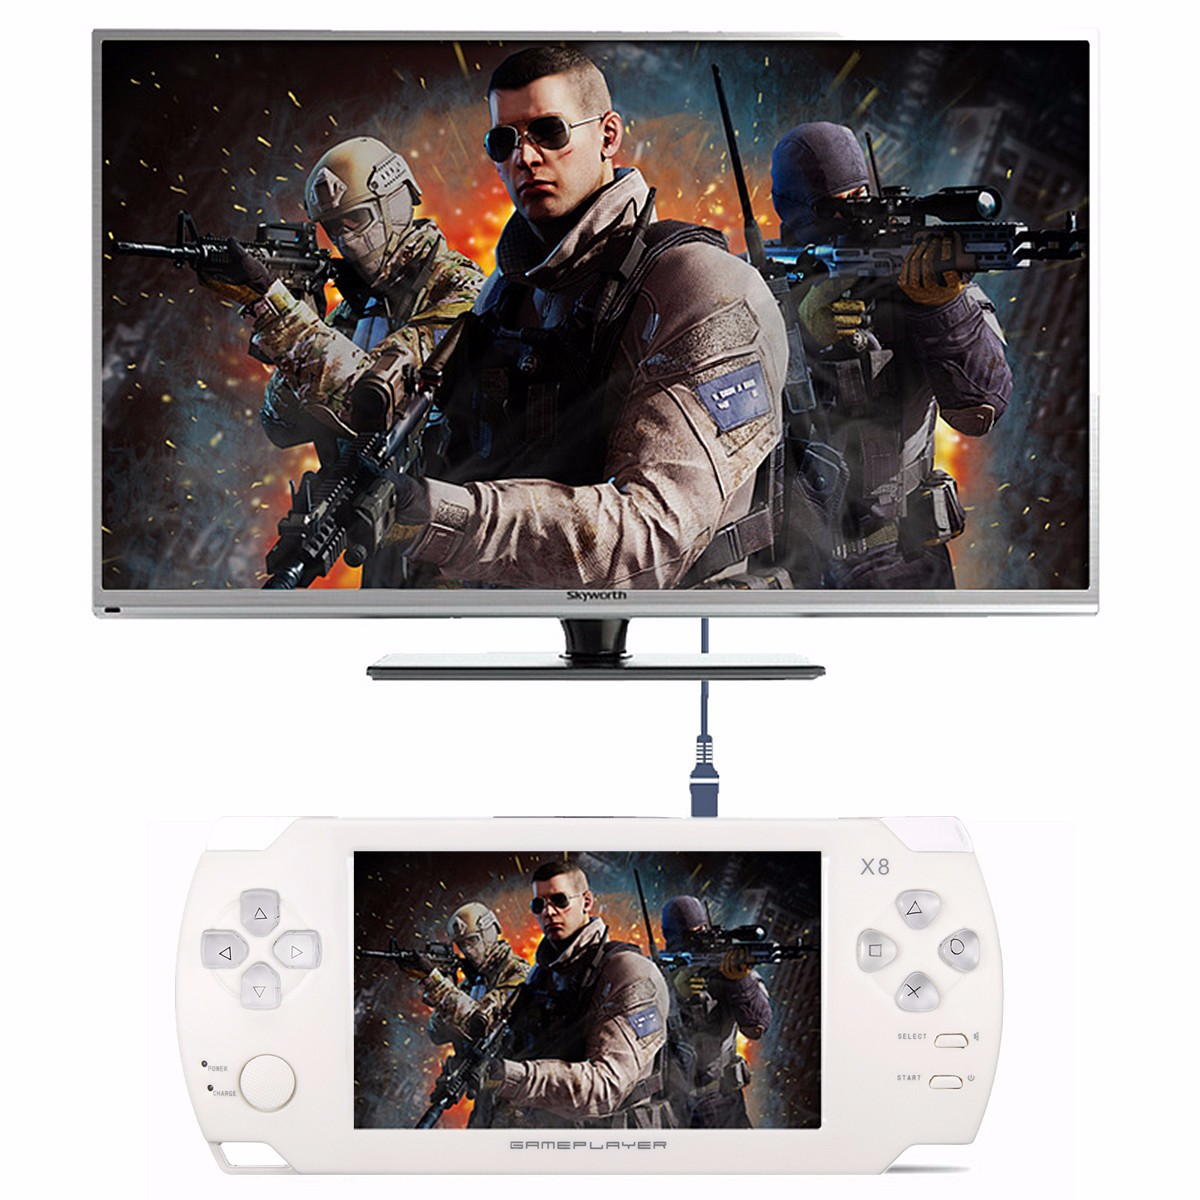 X8 Ultra Thin 8G Video Touch Screen with Video MP3 Player Camera Handheld Retro Game Console